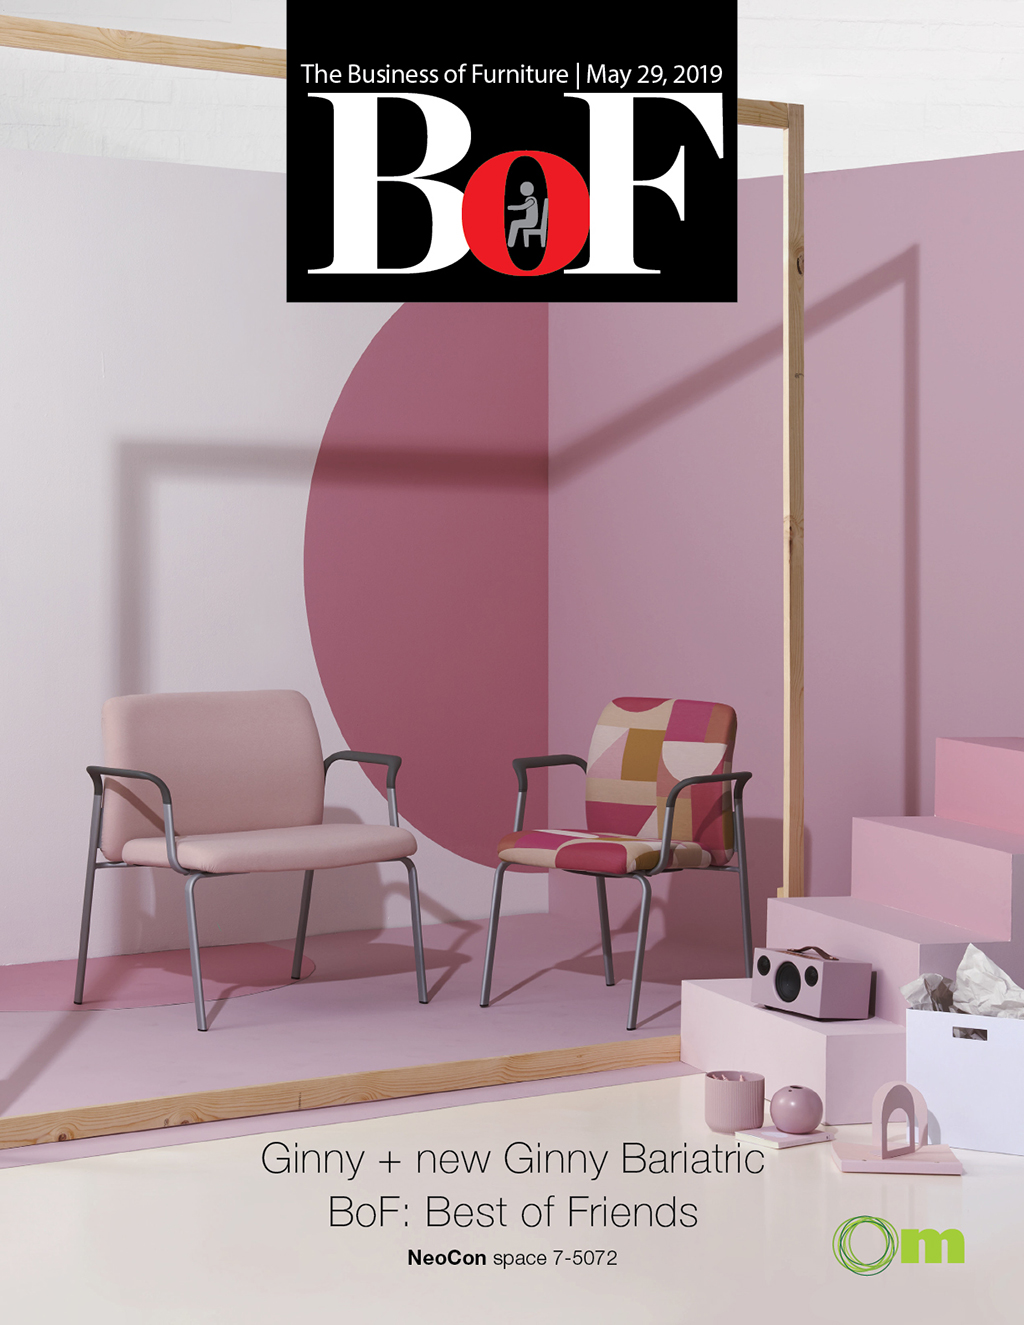 Sofa Mart Spokane Valley Wa Bellow Press Latest Editions Of Business Of Furniture And